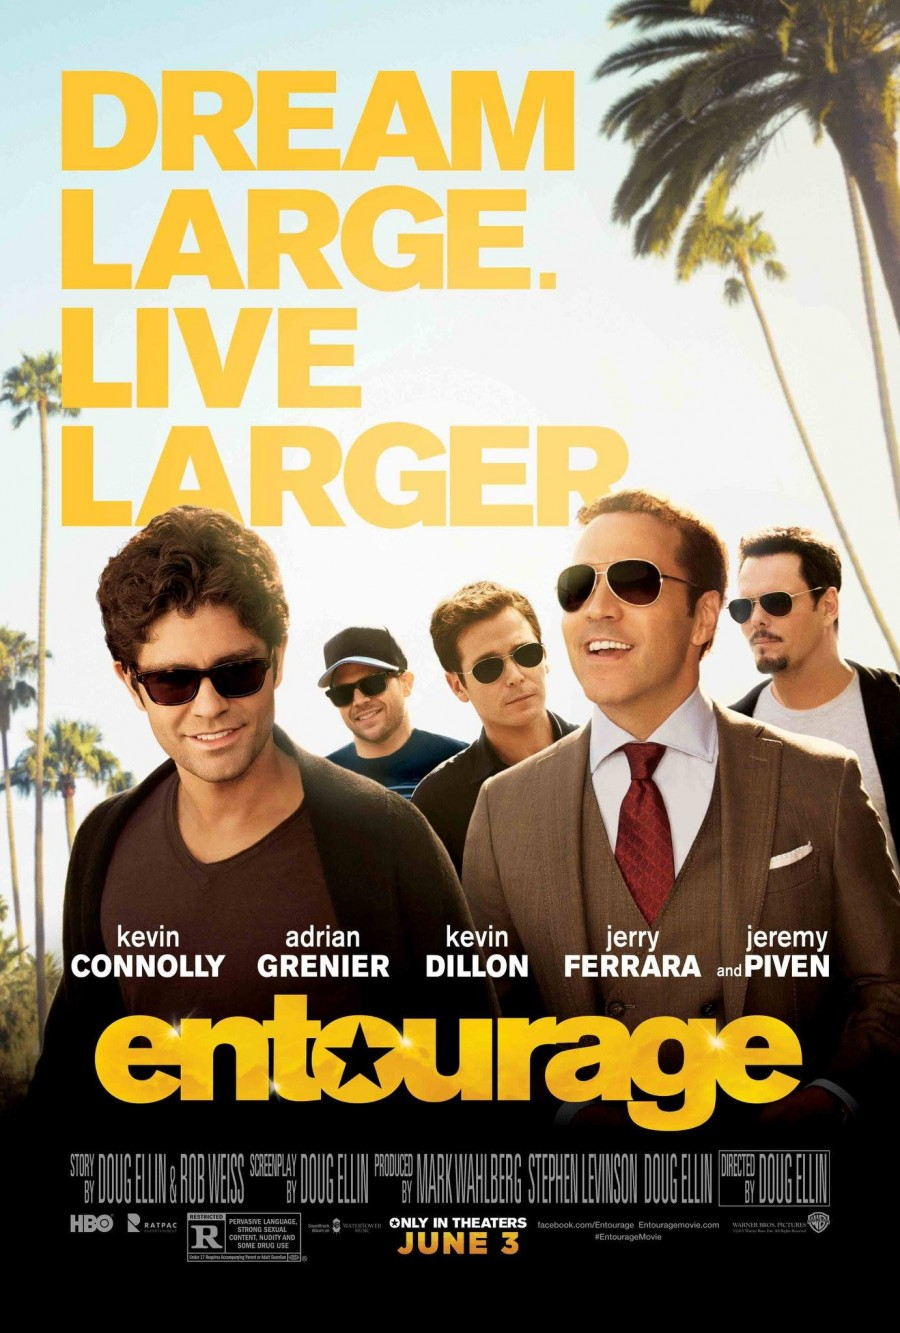 [明星伙伴/色欲荷里活]Entourage.2015.1080p.BluRay.x264-SPARKS 7.65G